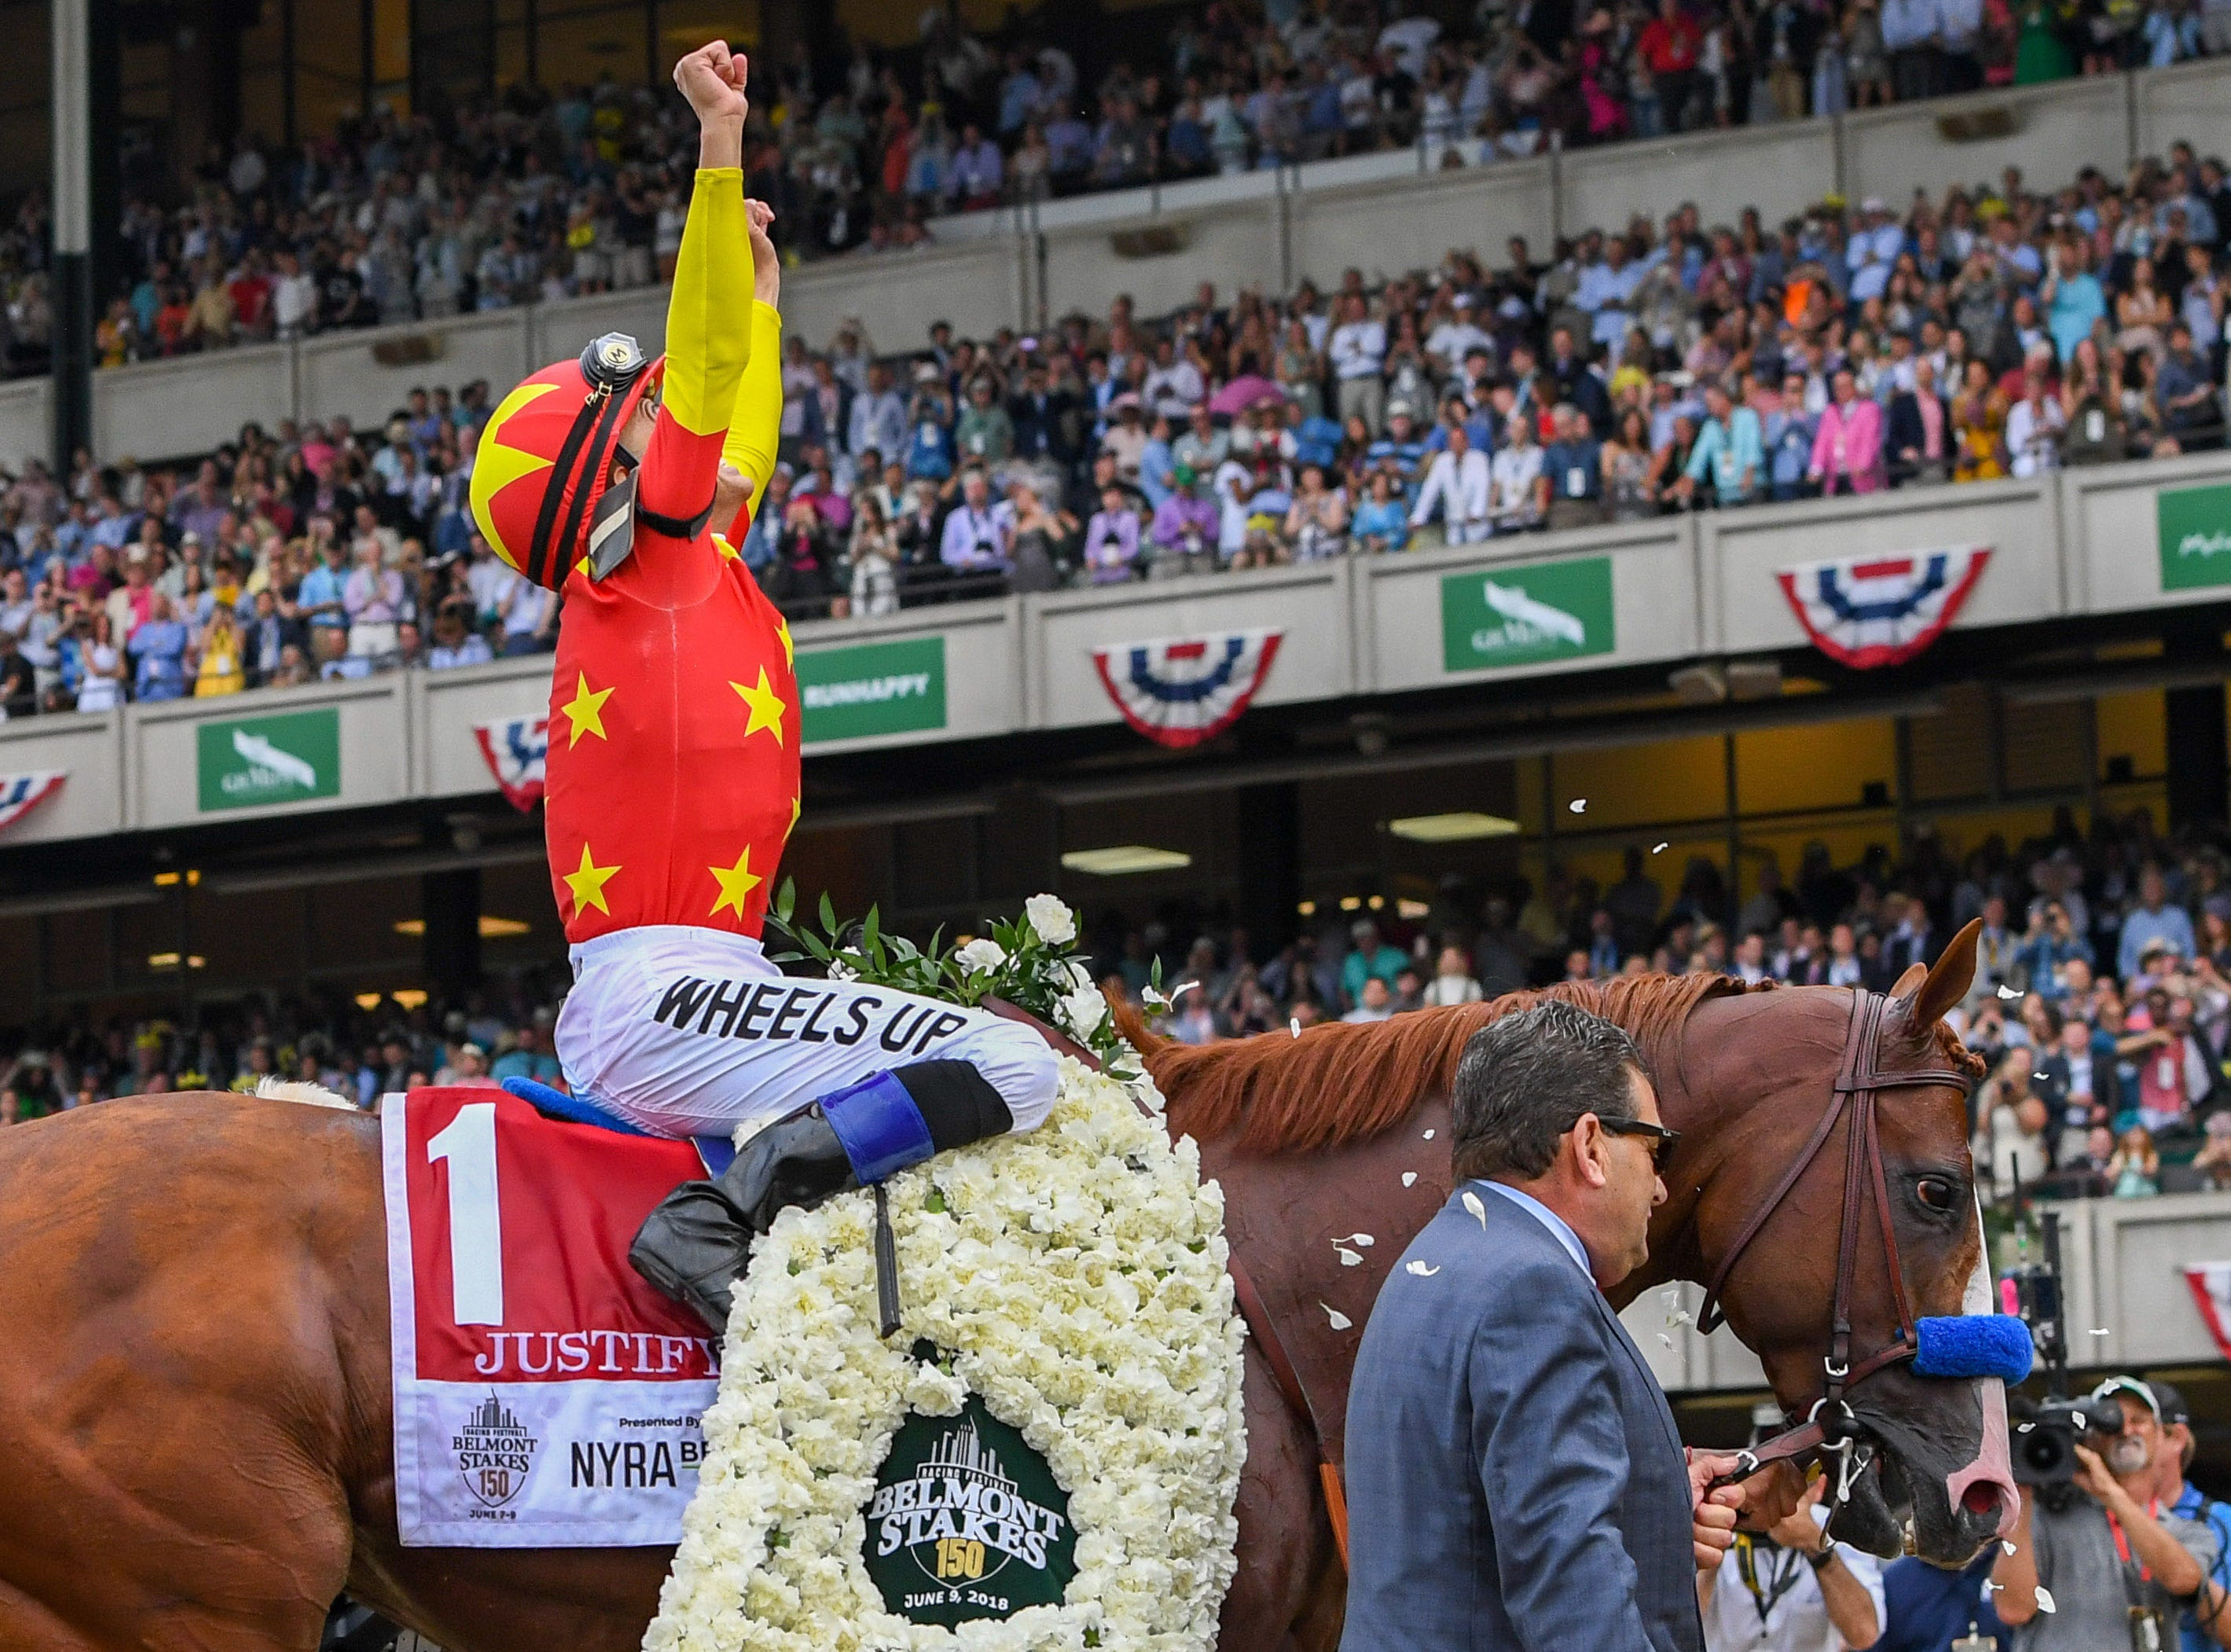 June 9: Mike Smith aboard Justify celebrates winning the Belmont Stakes to complete the Triple Crown.